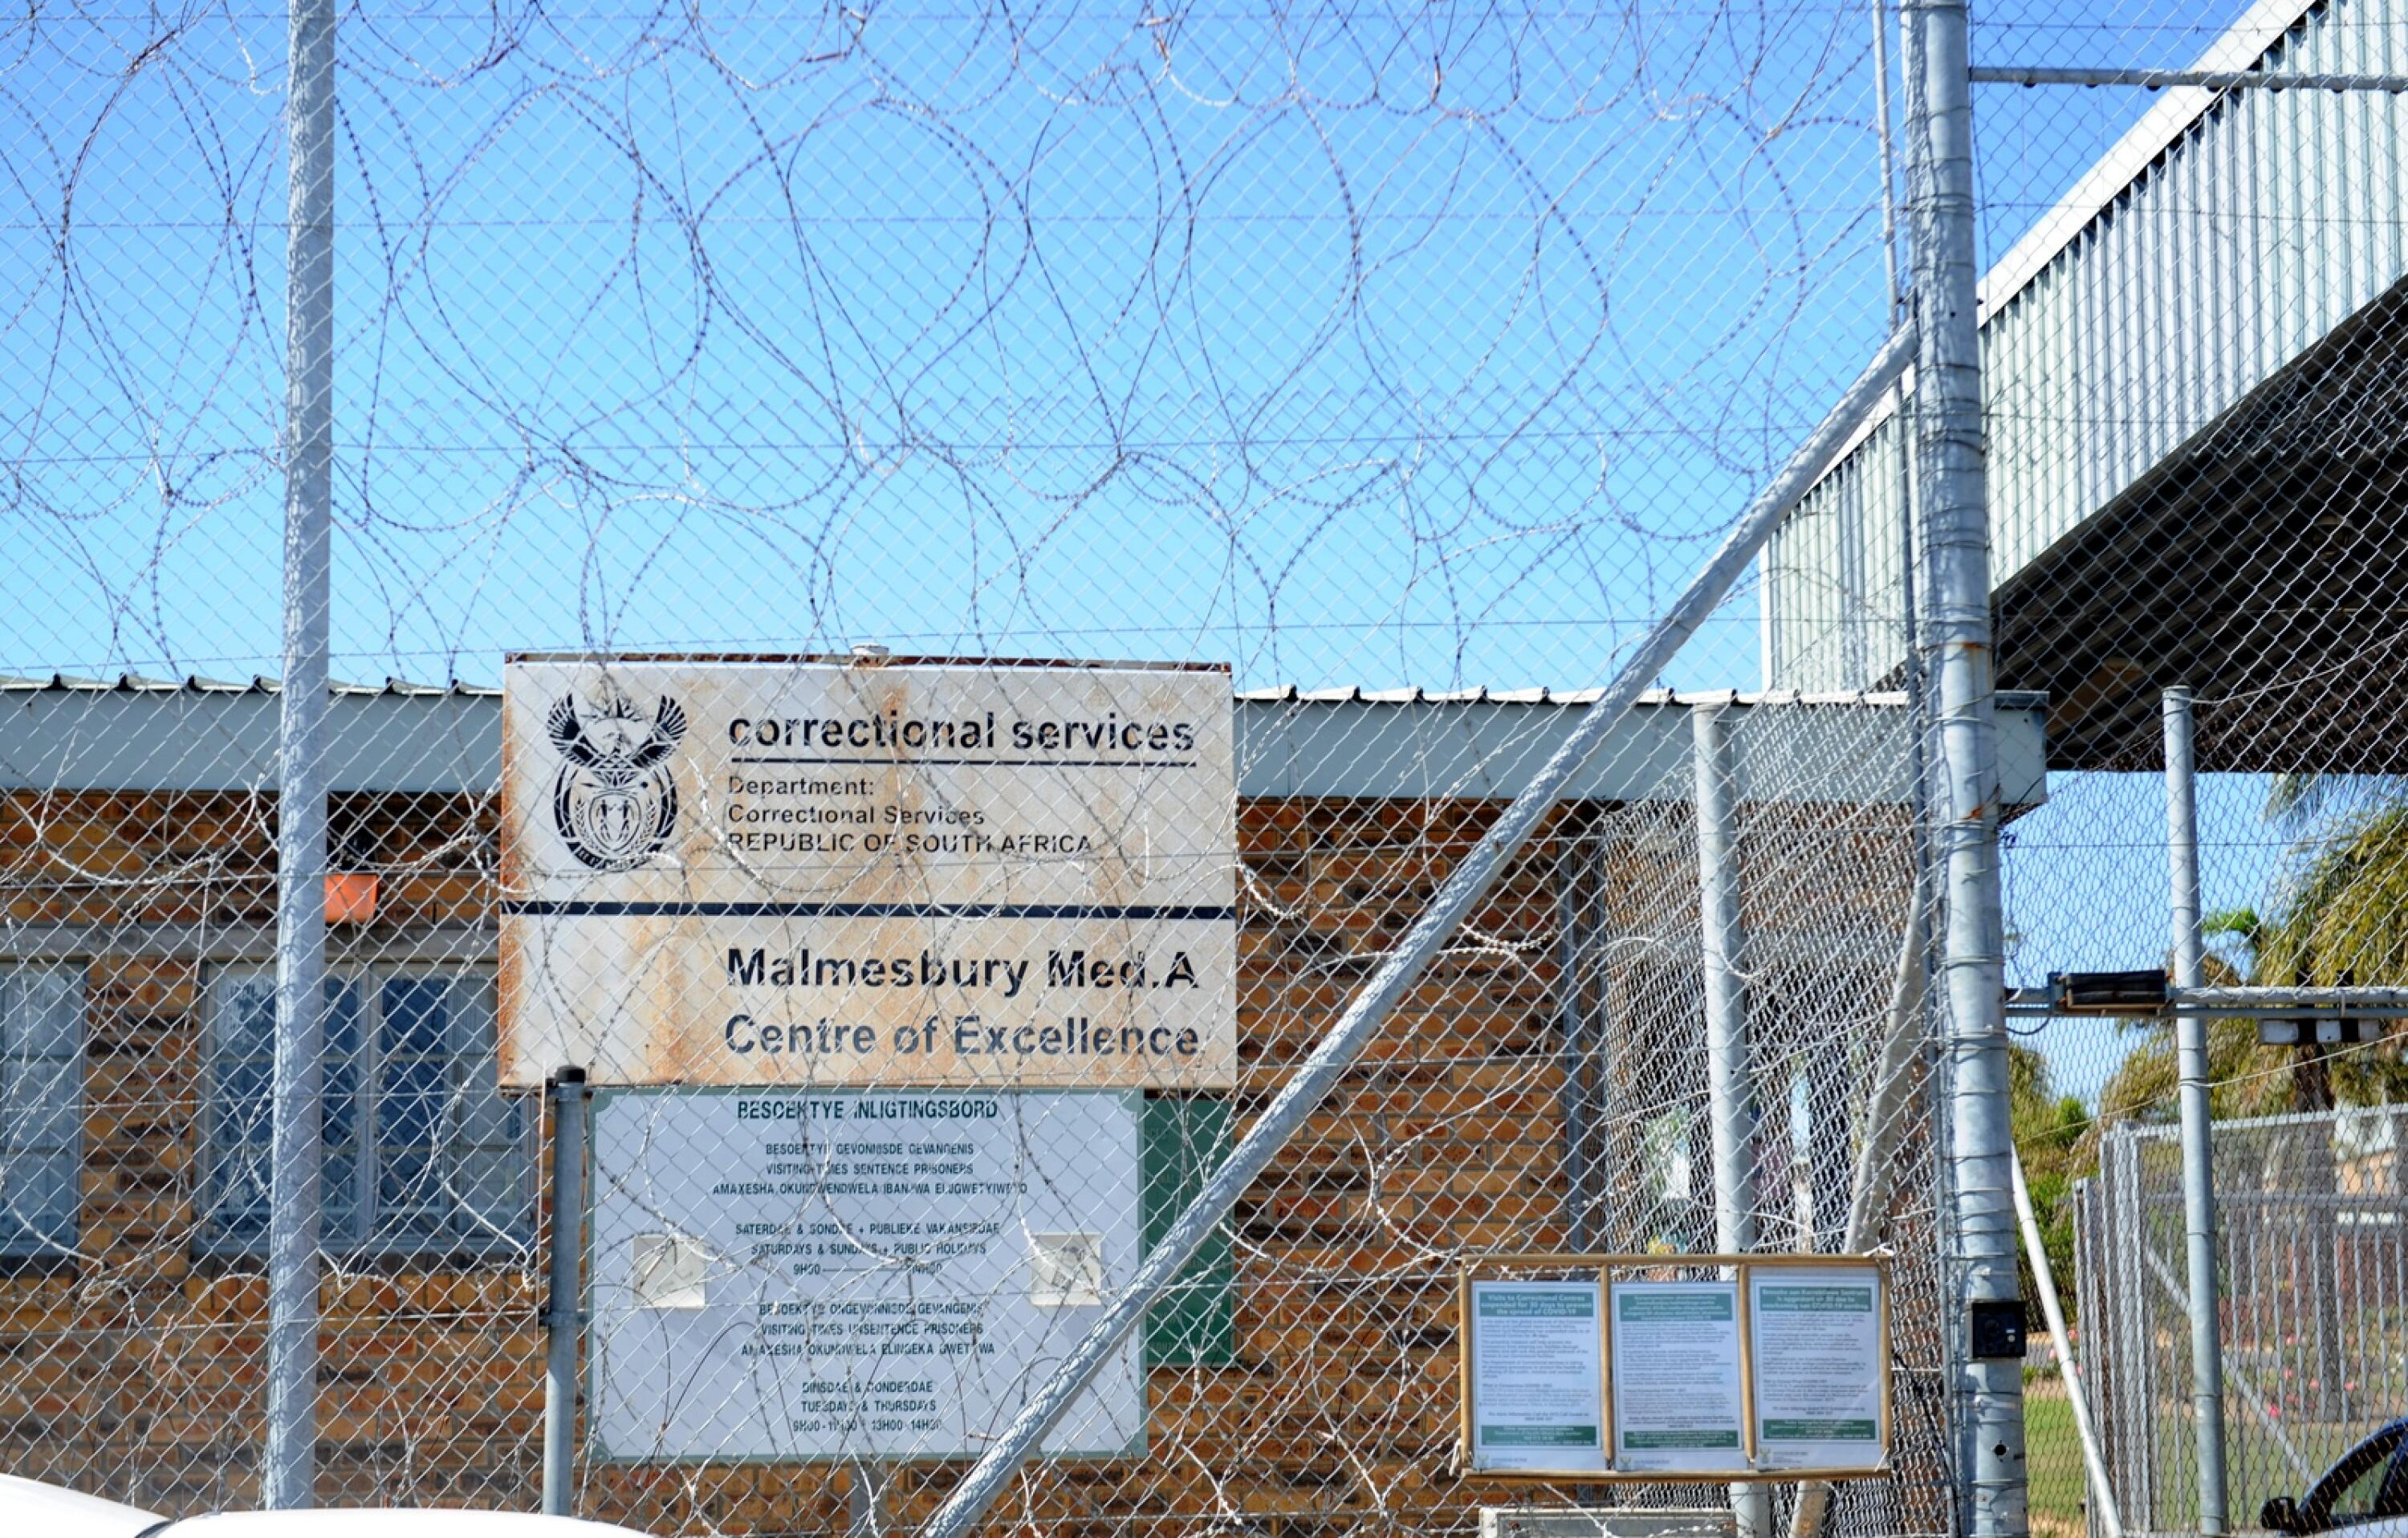 Exterior view of a brick correctional services building behind a barbed-wire fence.